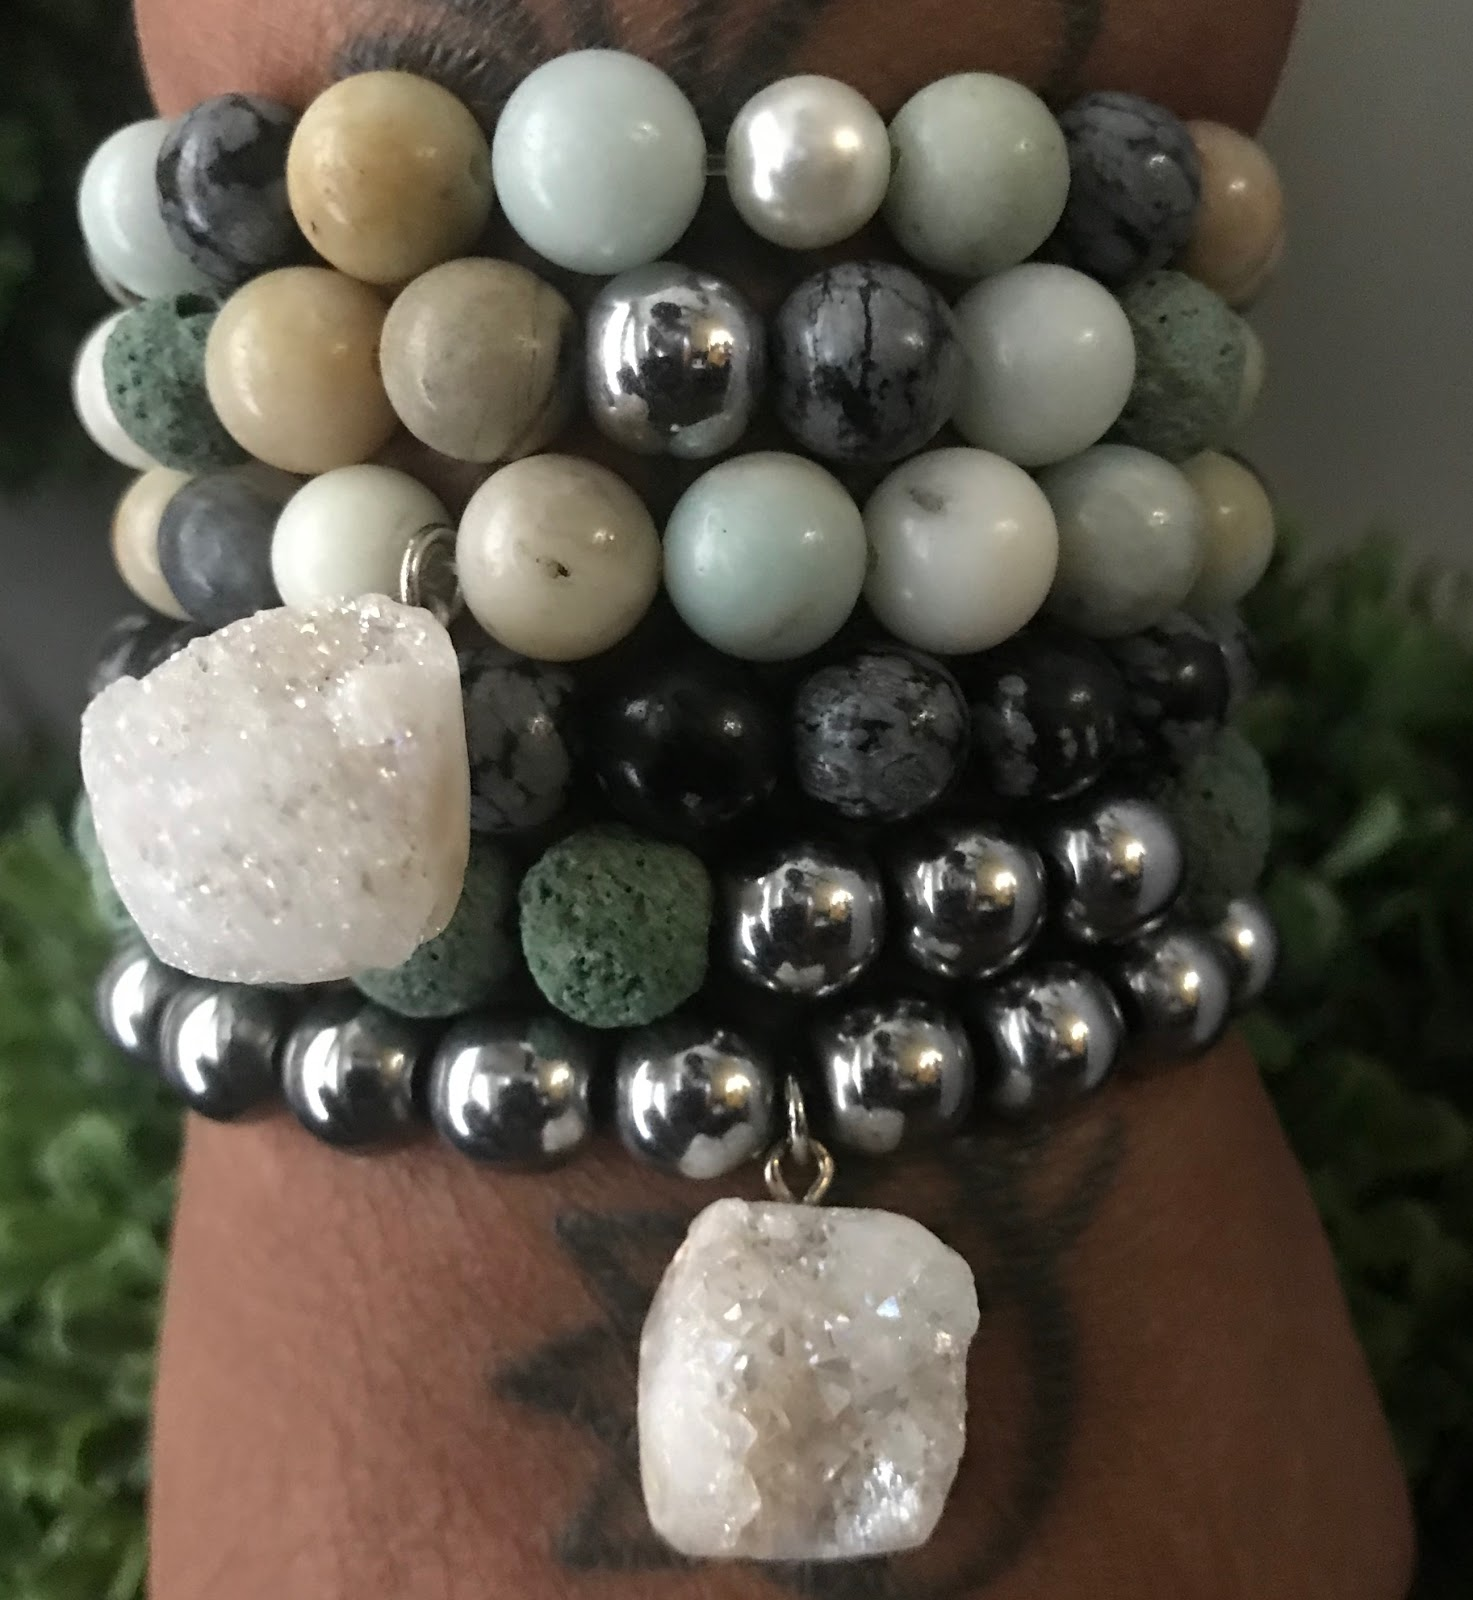 Tangie Bell is sharing the finished look by wearing DIY bracelets